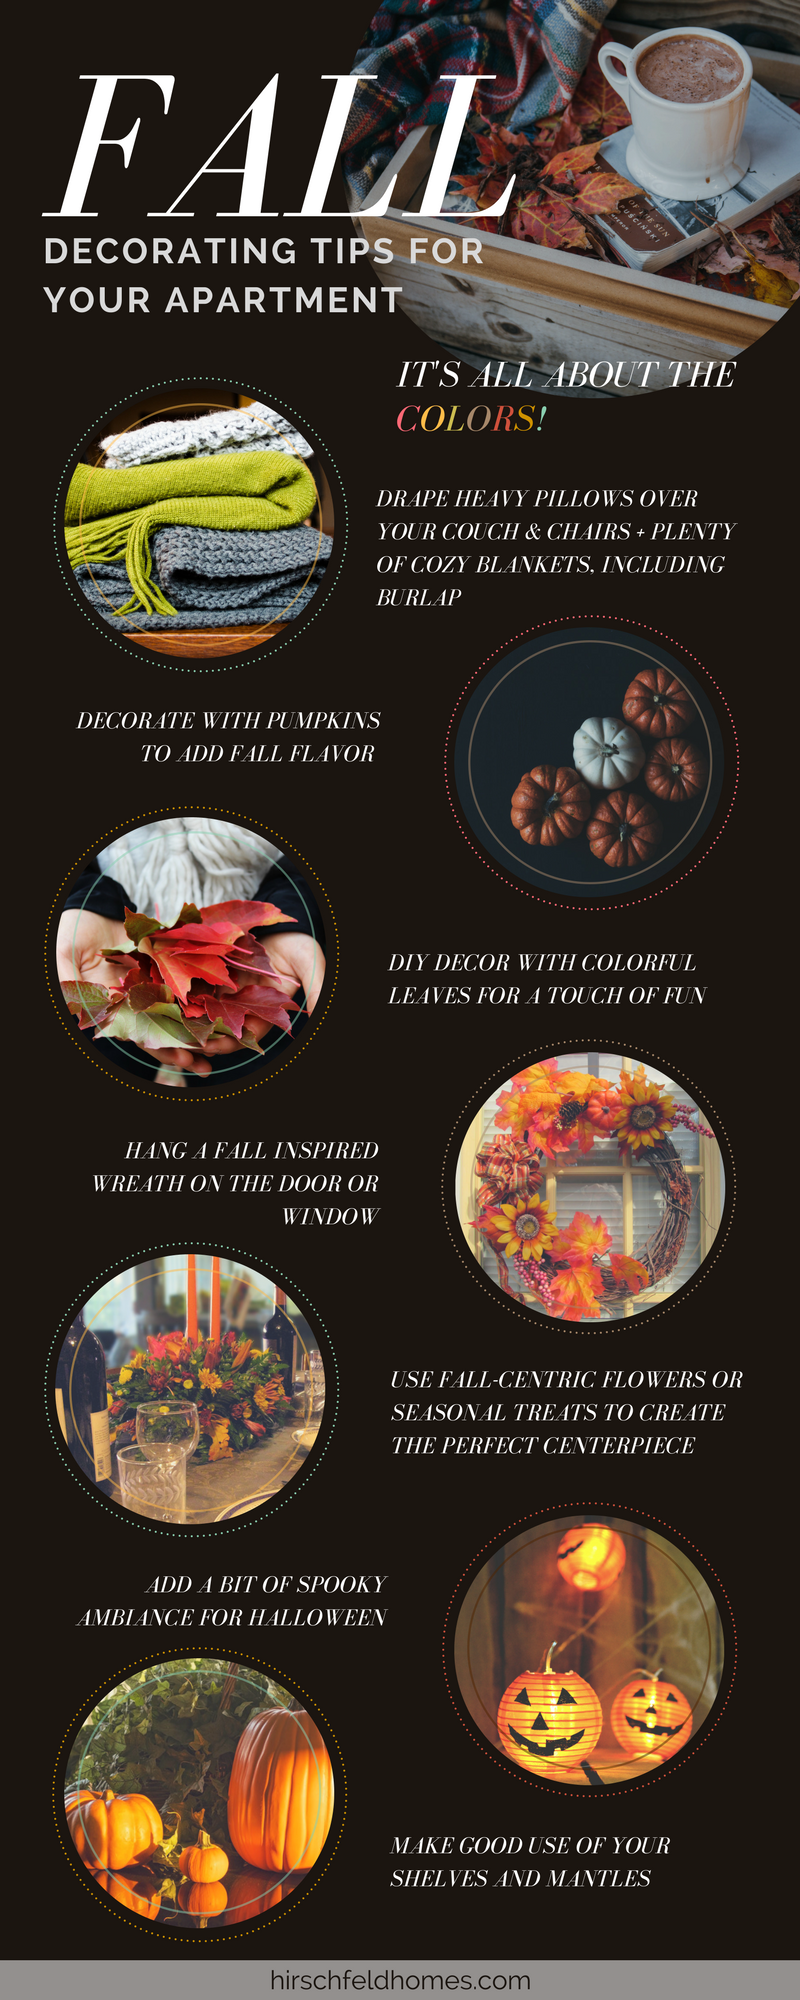 Autumn Apartments 10 Tips For Fall Decorating Hirschfeld